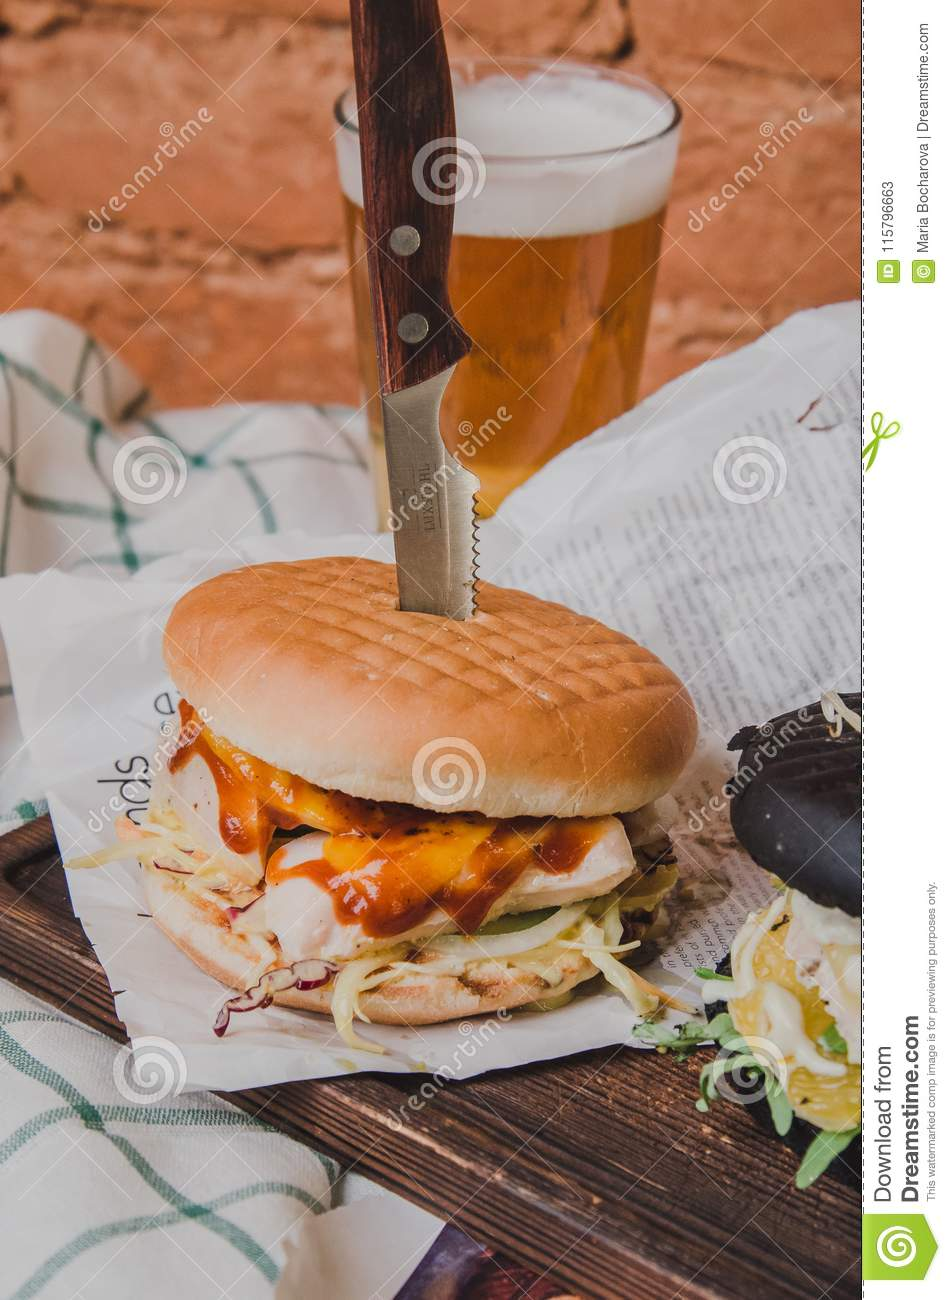 Closeup Of Home Made Burger With Chicken, Tomato Sauce